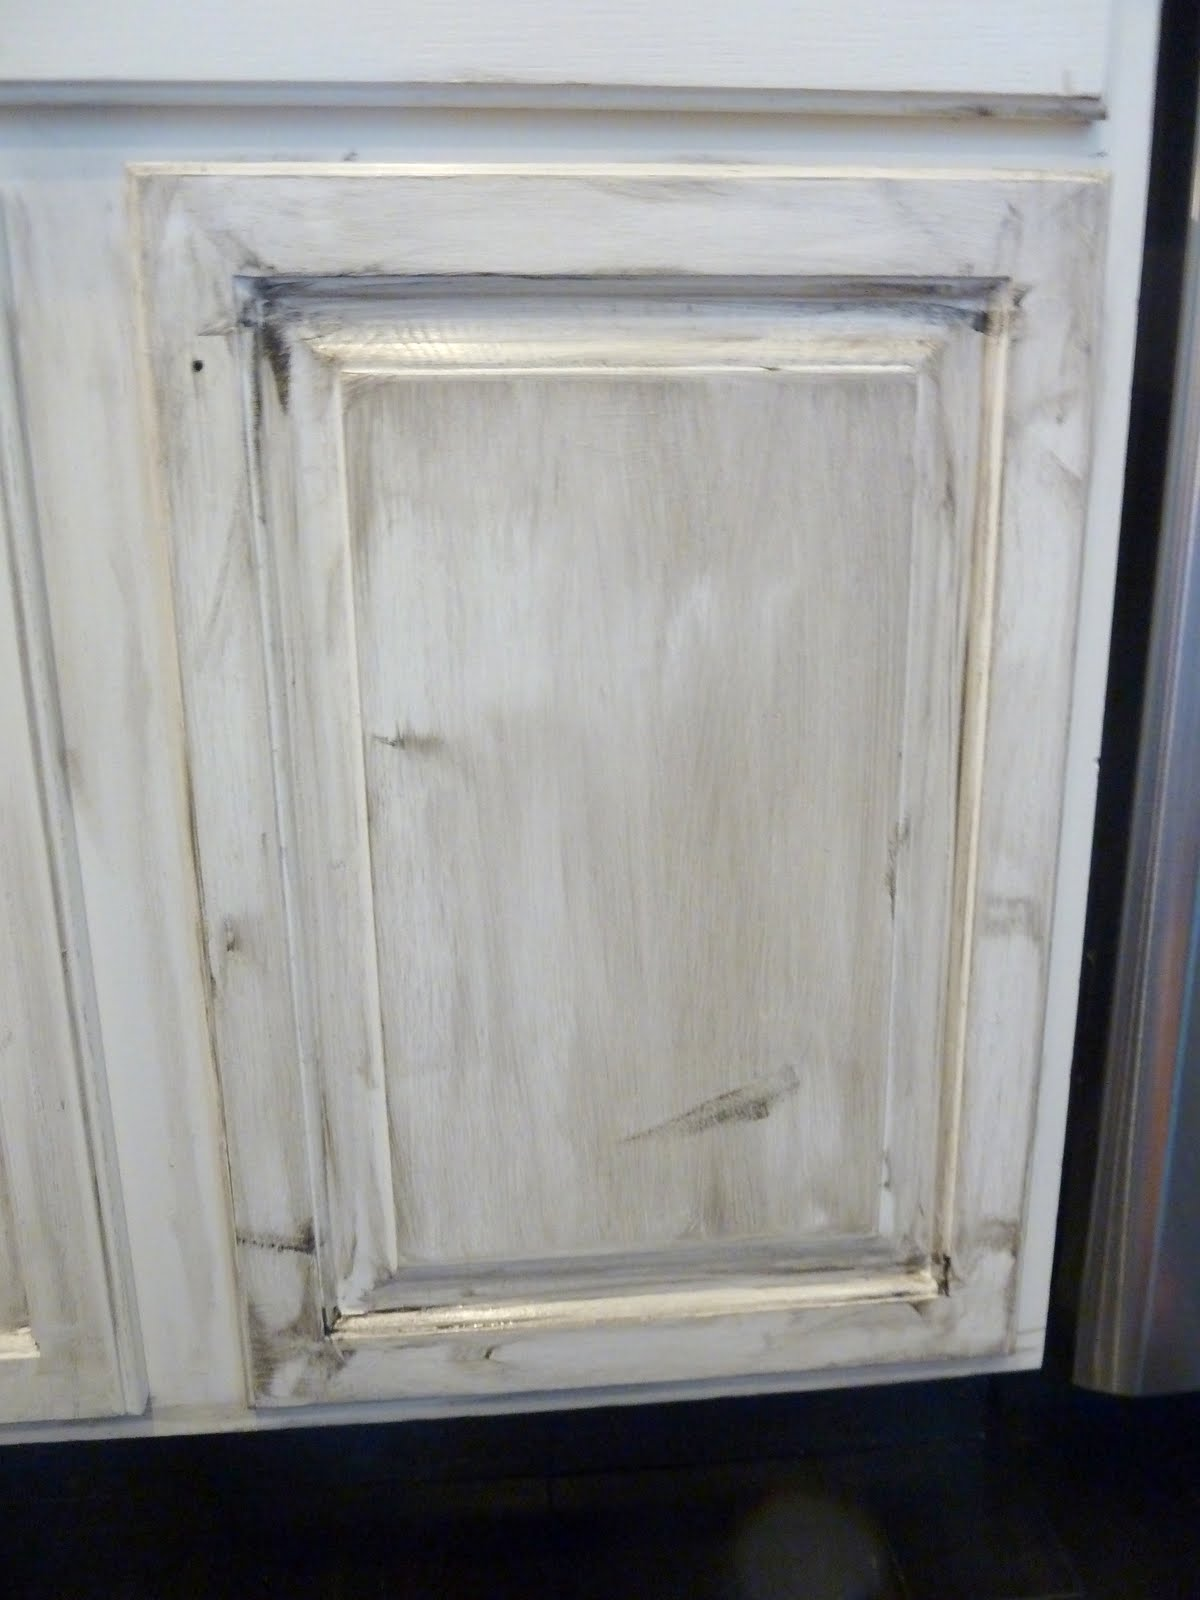 glazed kitchen cabinets - Distressed Kitchen Cabinets